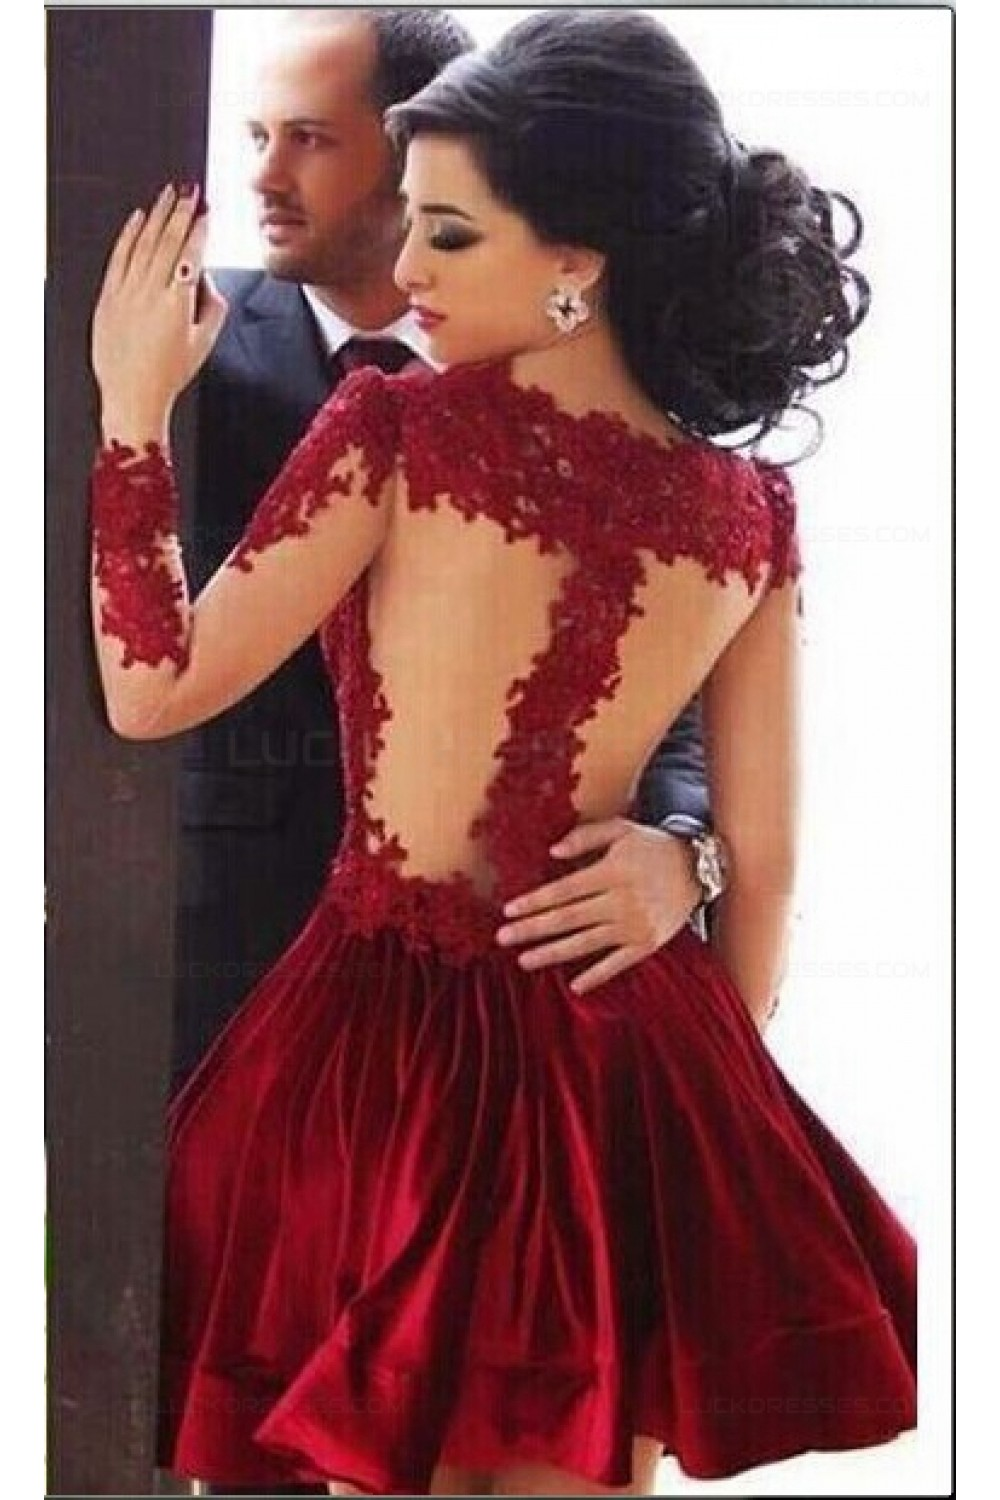 e7052525f00 Short Red Homecoming Dresses High Neck Long Sleeves Sheer Lace Appliques  Satin Knee Length Party Evening ...